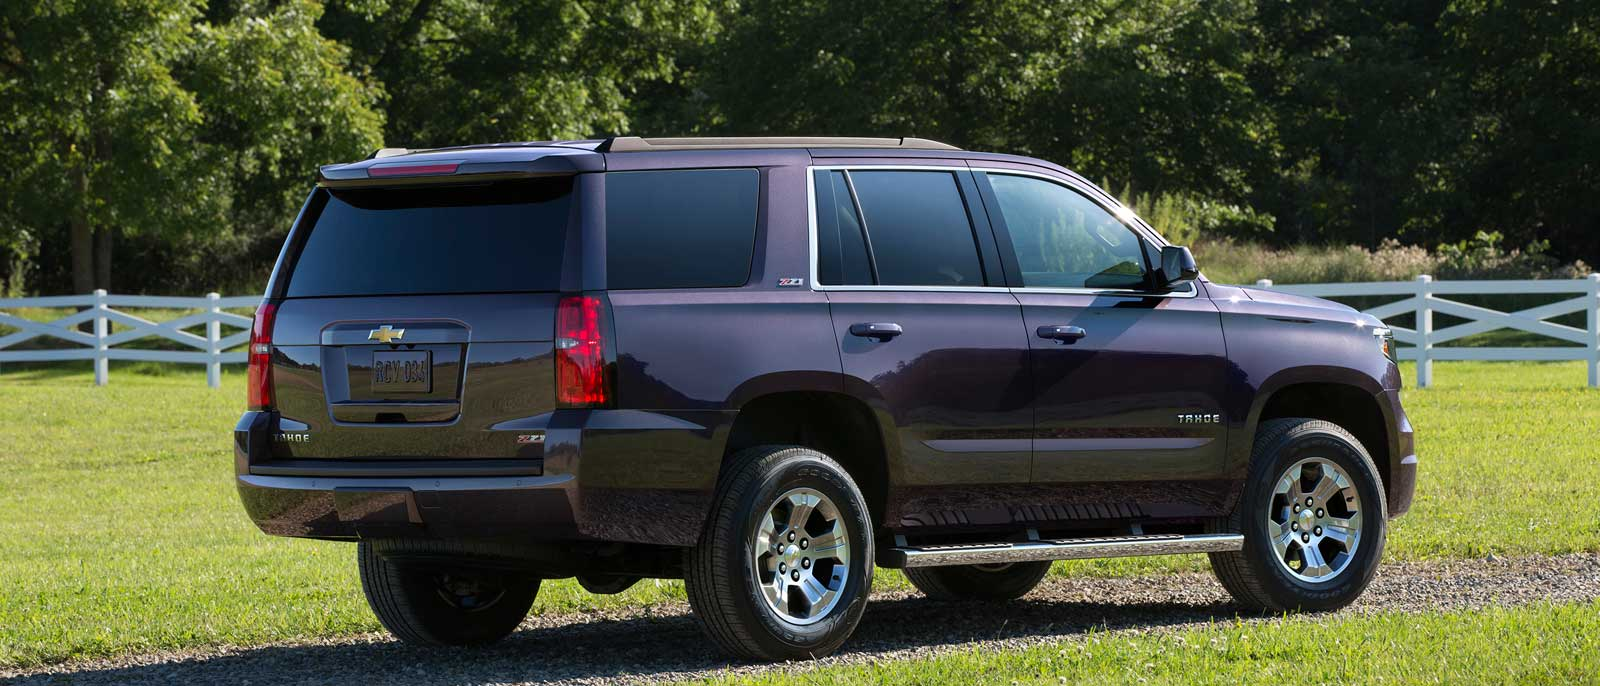 2016 Chevrolet Tahoe back view